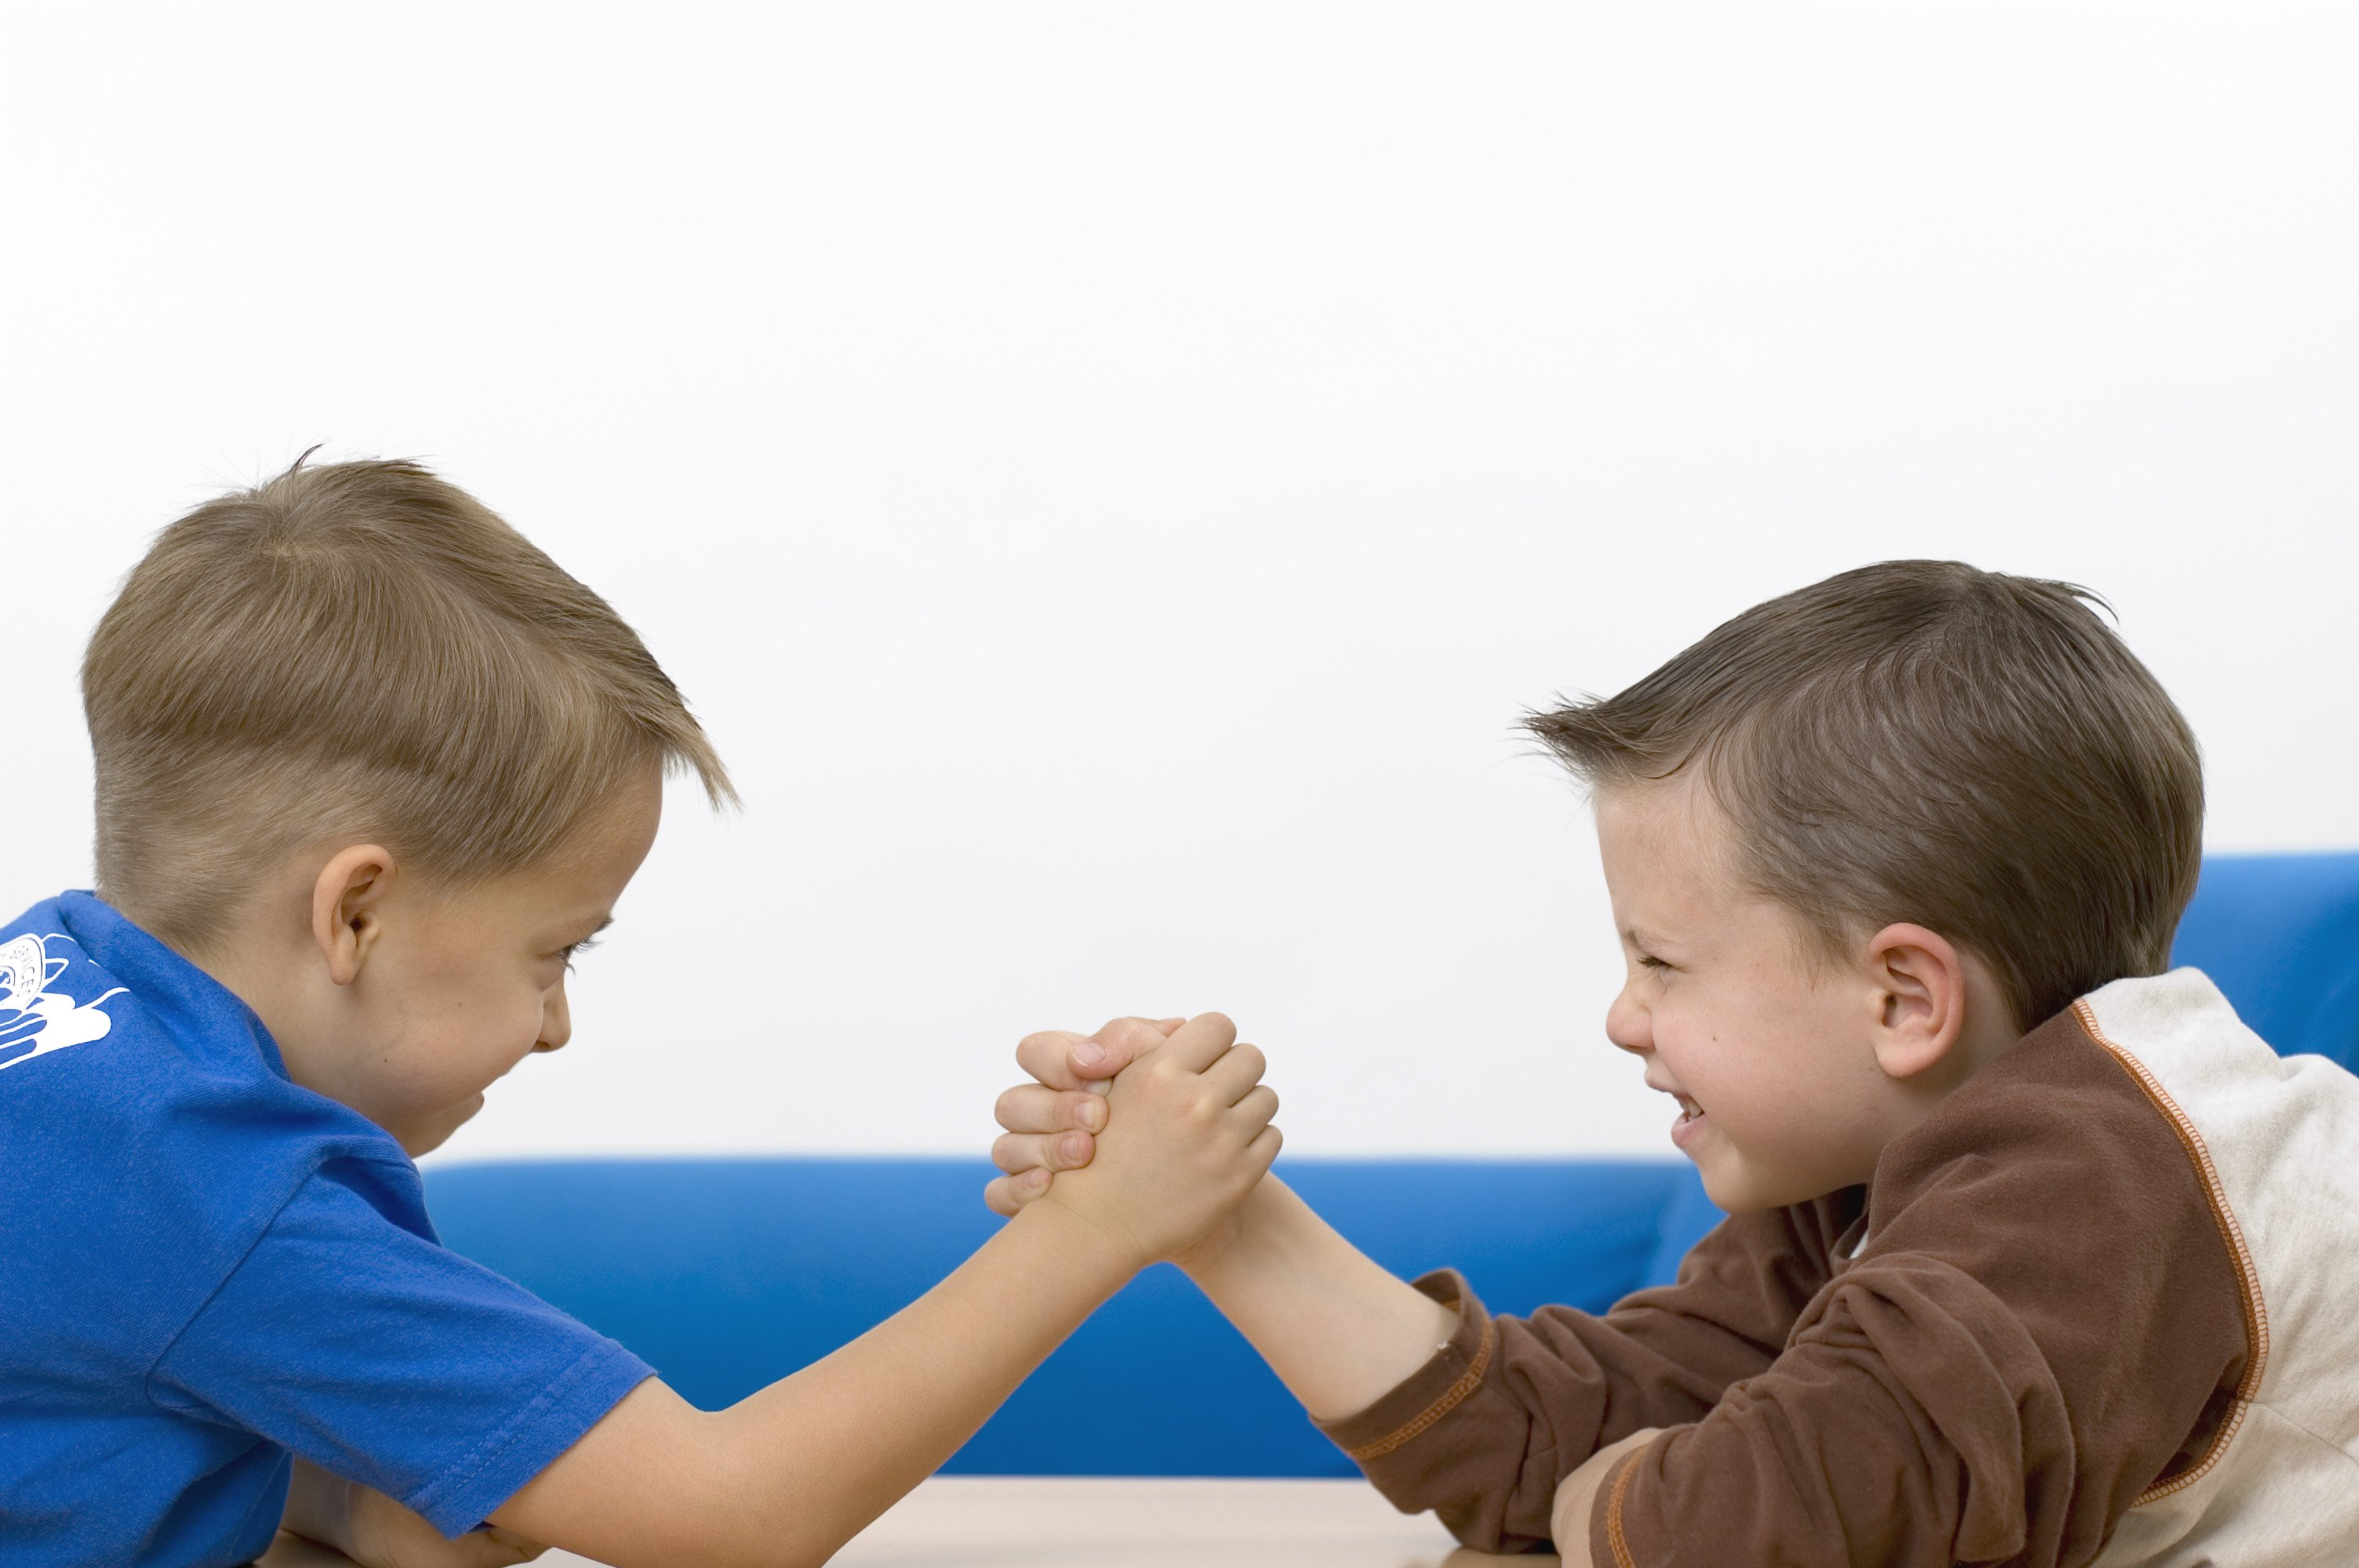 Classroom_Competition_Arm_Wrestling.jpg